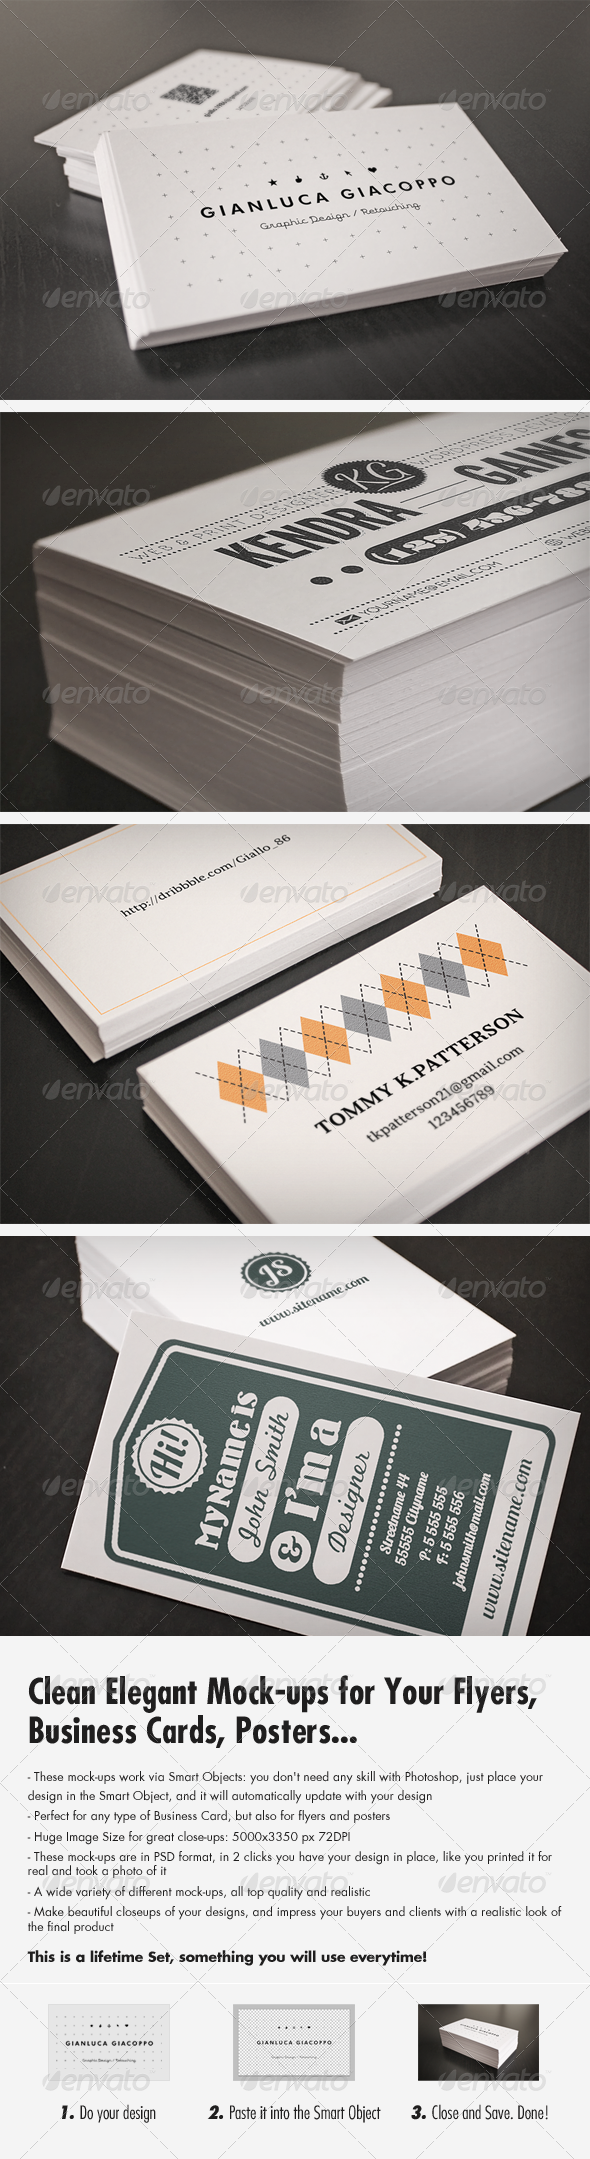 Flyer and Business Card Clean Realistic Mockups by YellowRevenge ...